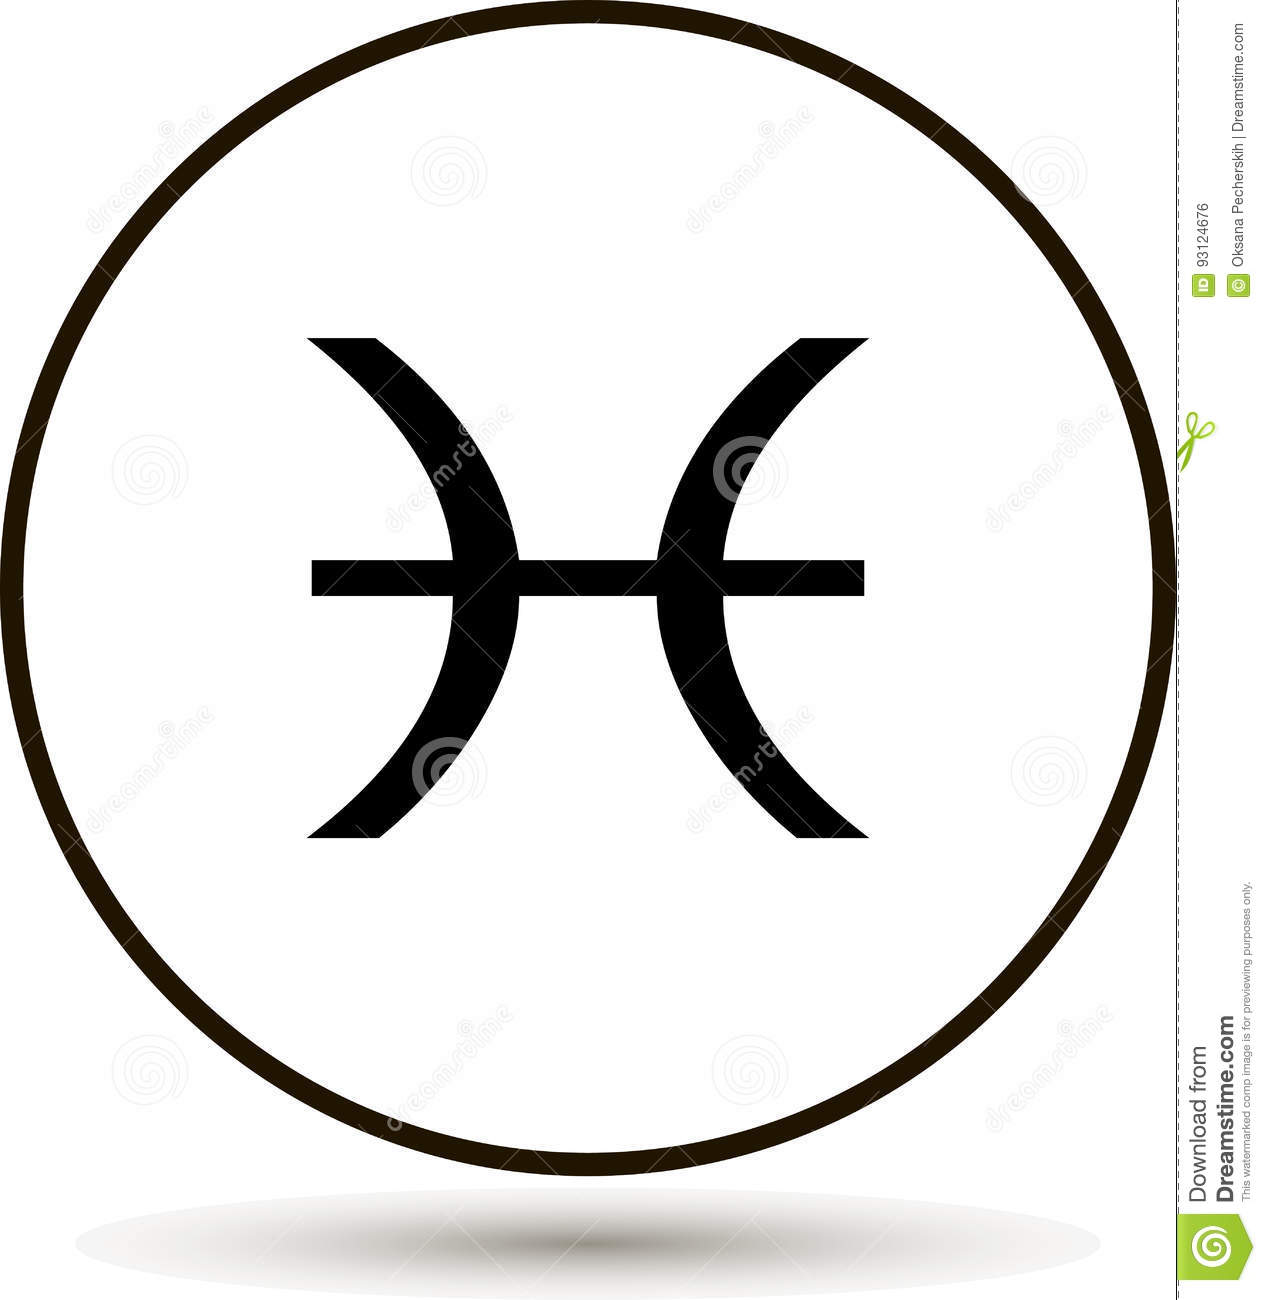 Pisces zodiac sign astrological symbol icon in circle stock vector pisces zodiac sign astrological symbol icon in circle biocorpaavc Choice Image